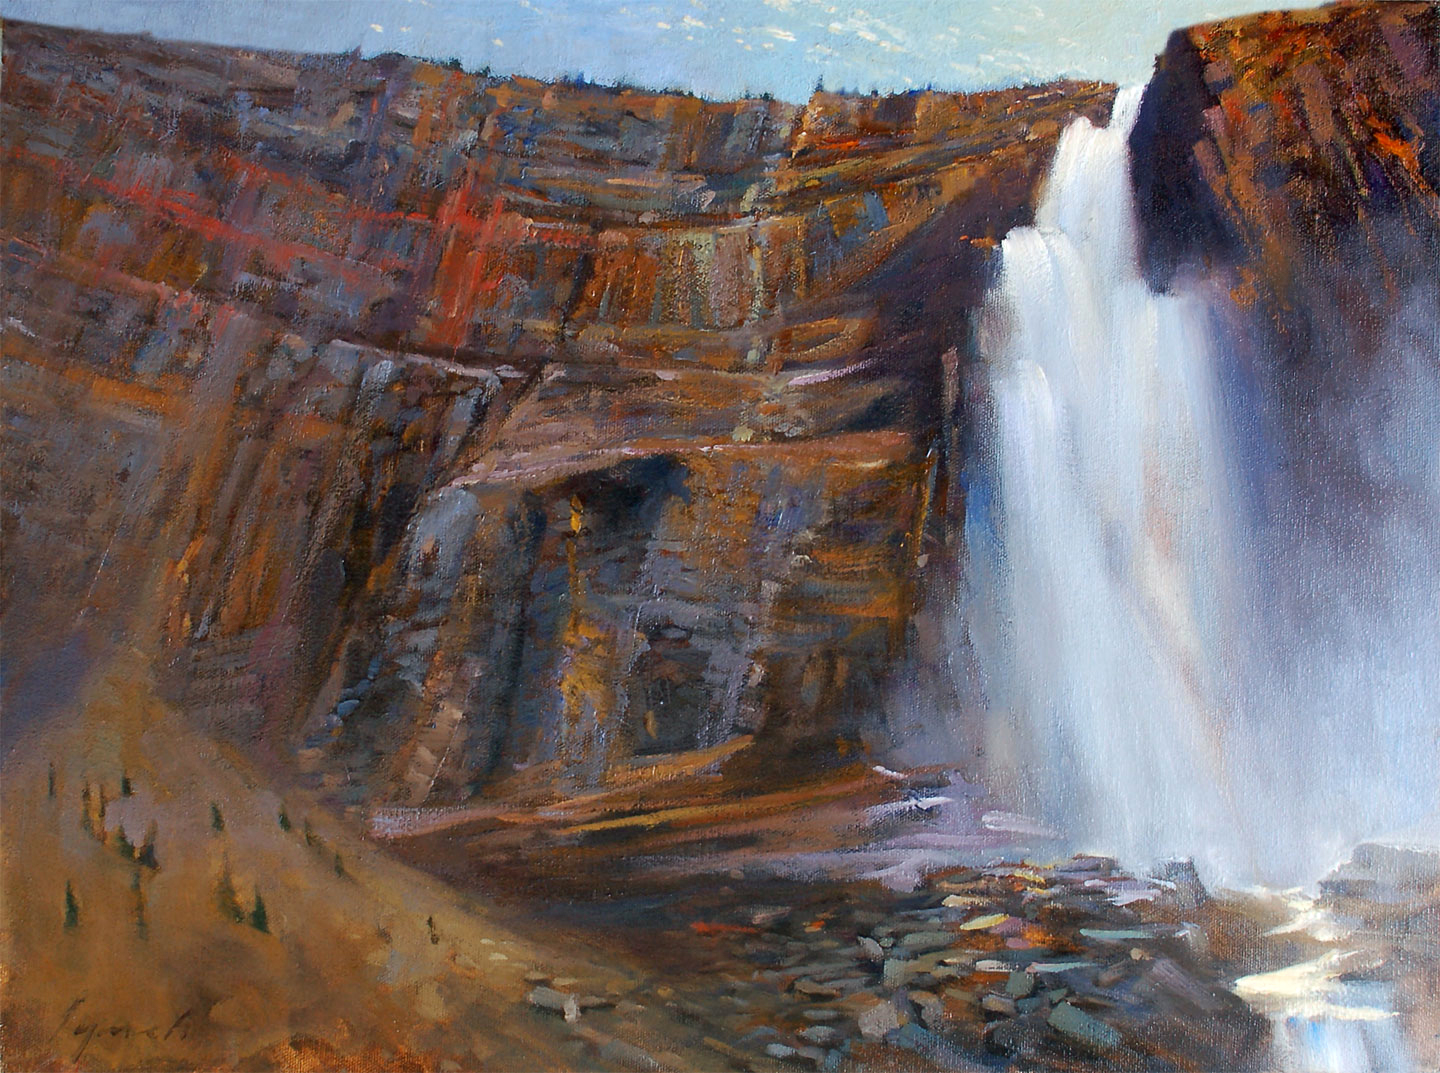 'Takakkaw Falls' Yoho Nat. Park oil on canvas 16 X 20 in. 2007